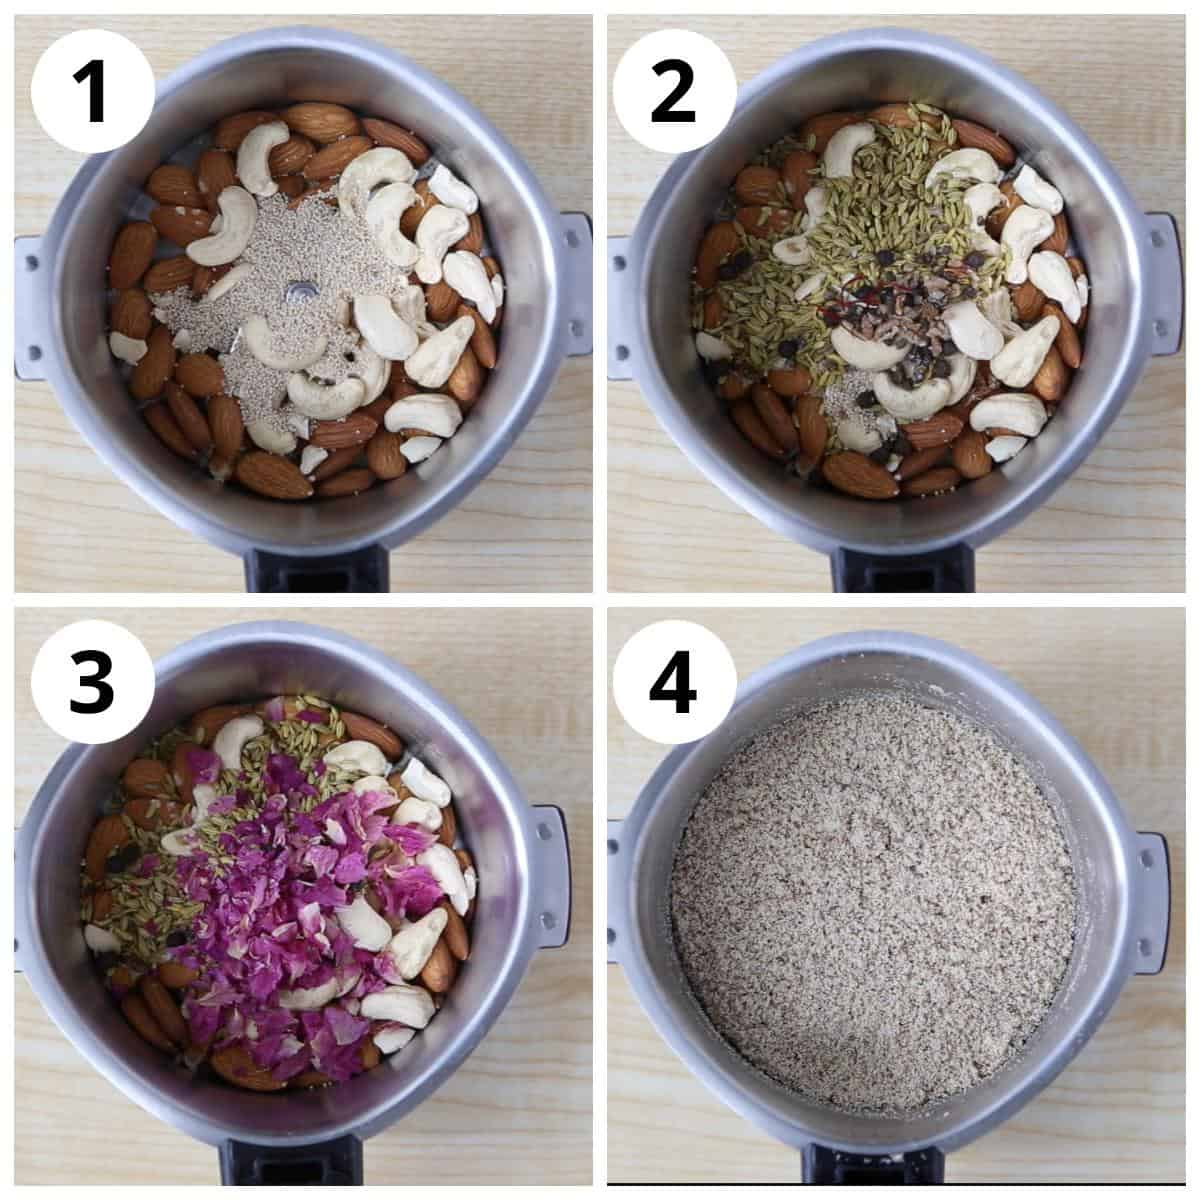 Steps to make thandai powder grinding all ingredients together